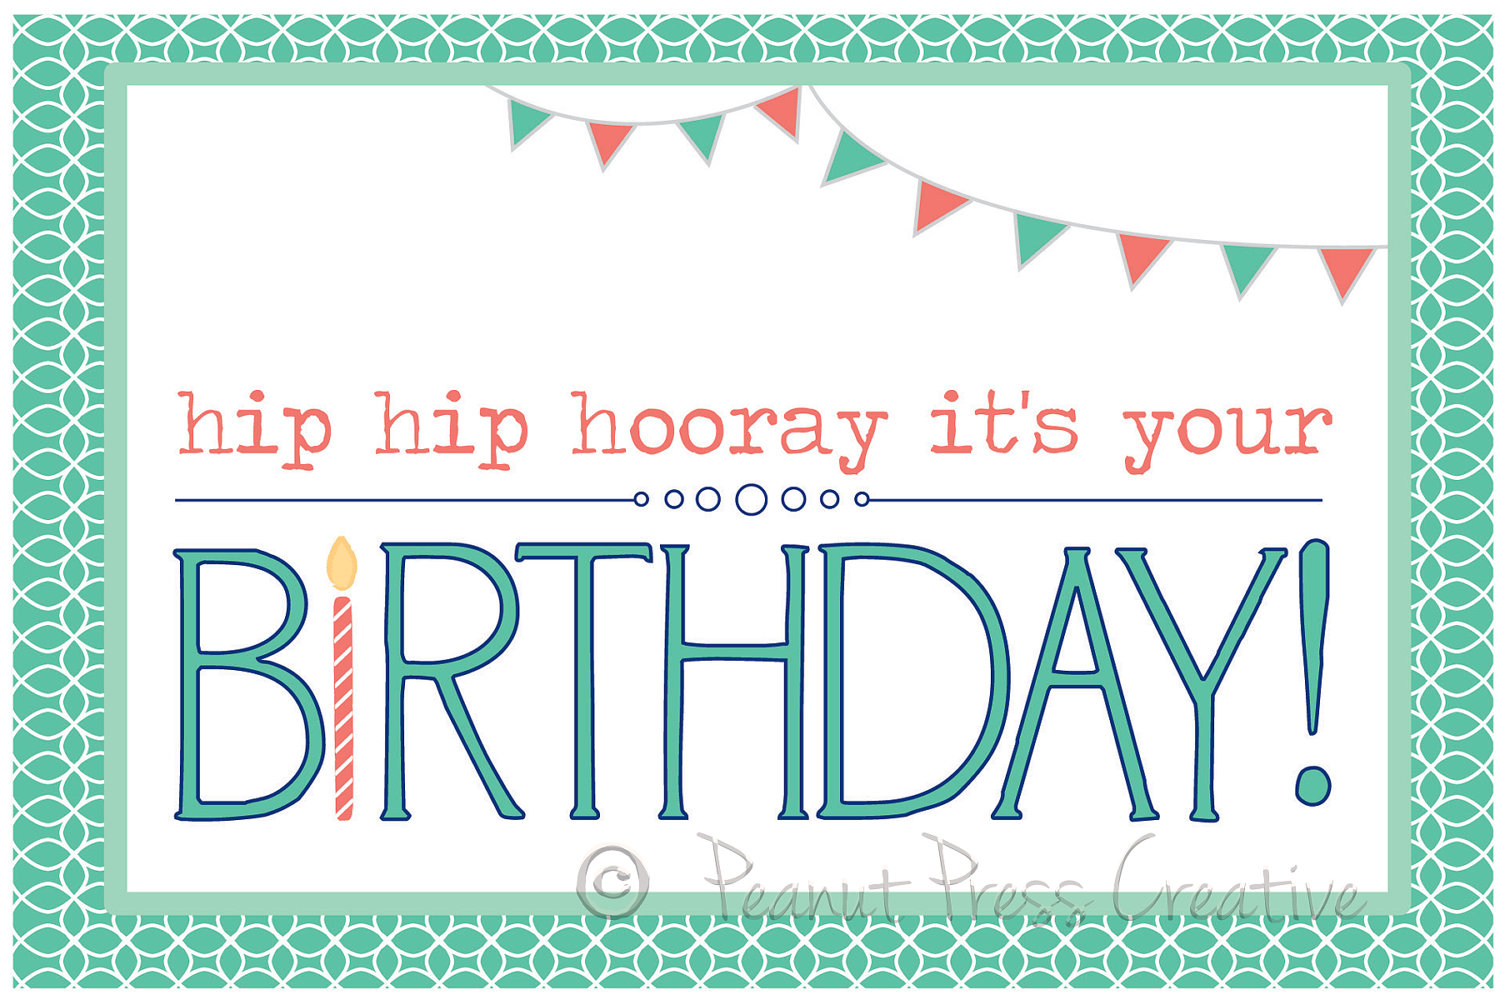 printable birthday cards free no sign up ; a8aa1f1ddf023114504731d55a005ebd